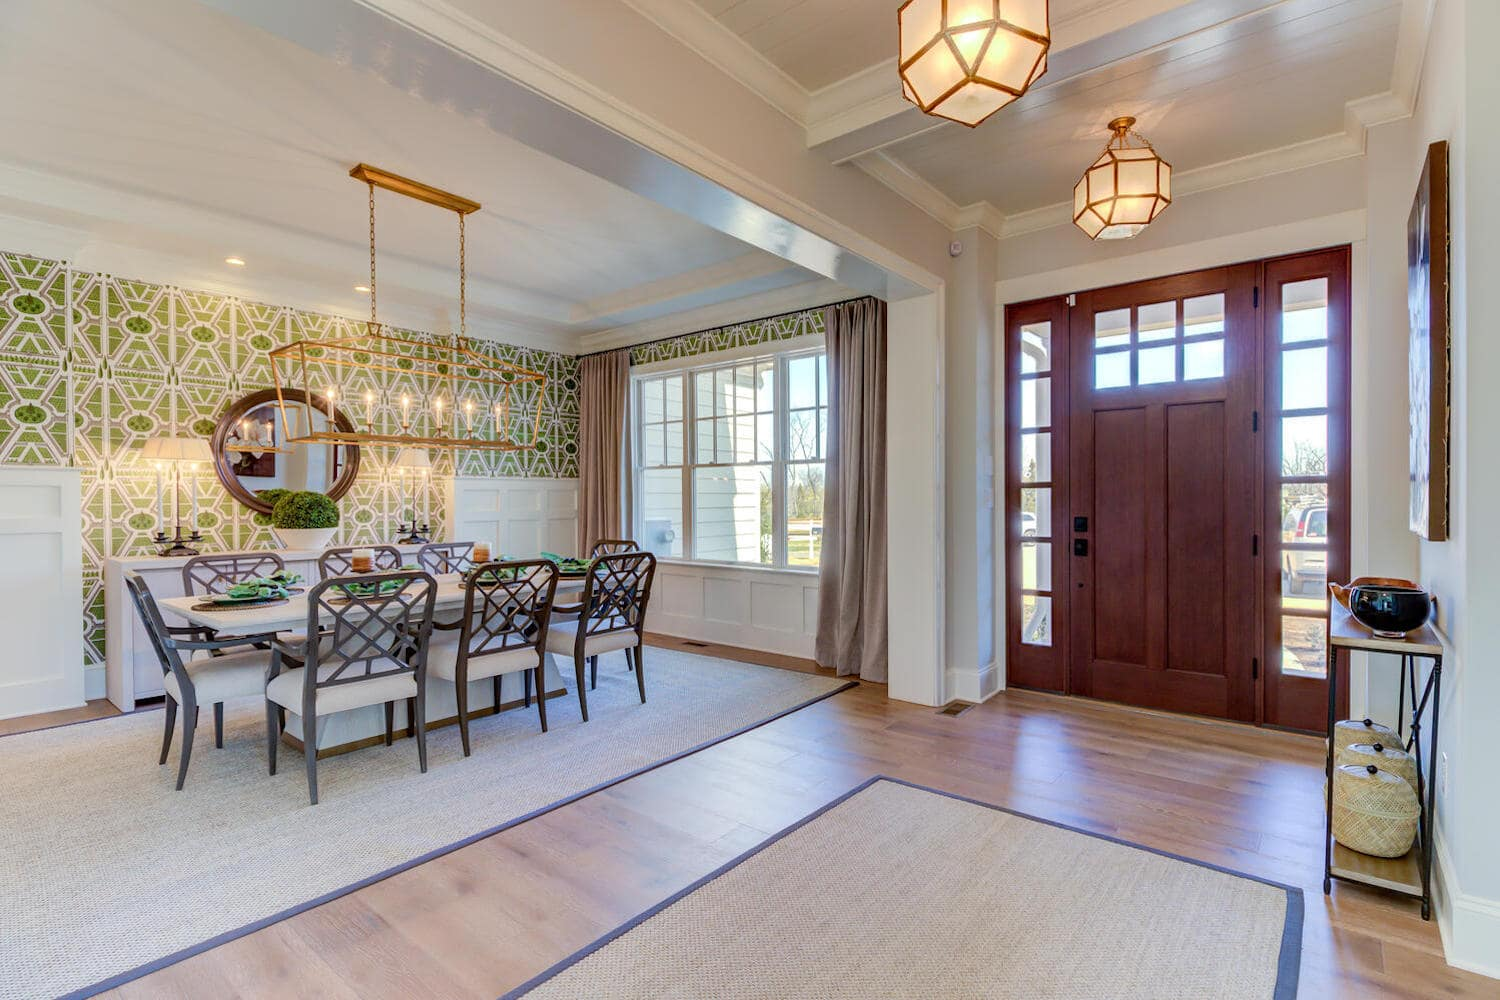 Entrance and dining room in a new home in Wayne from Bentley Homes.